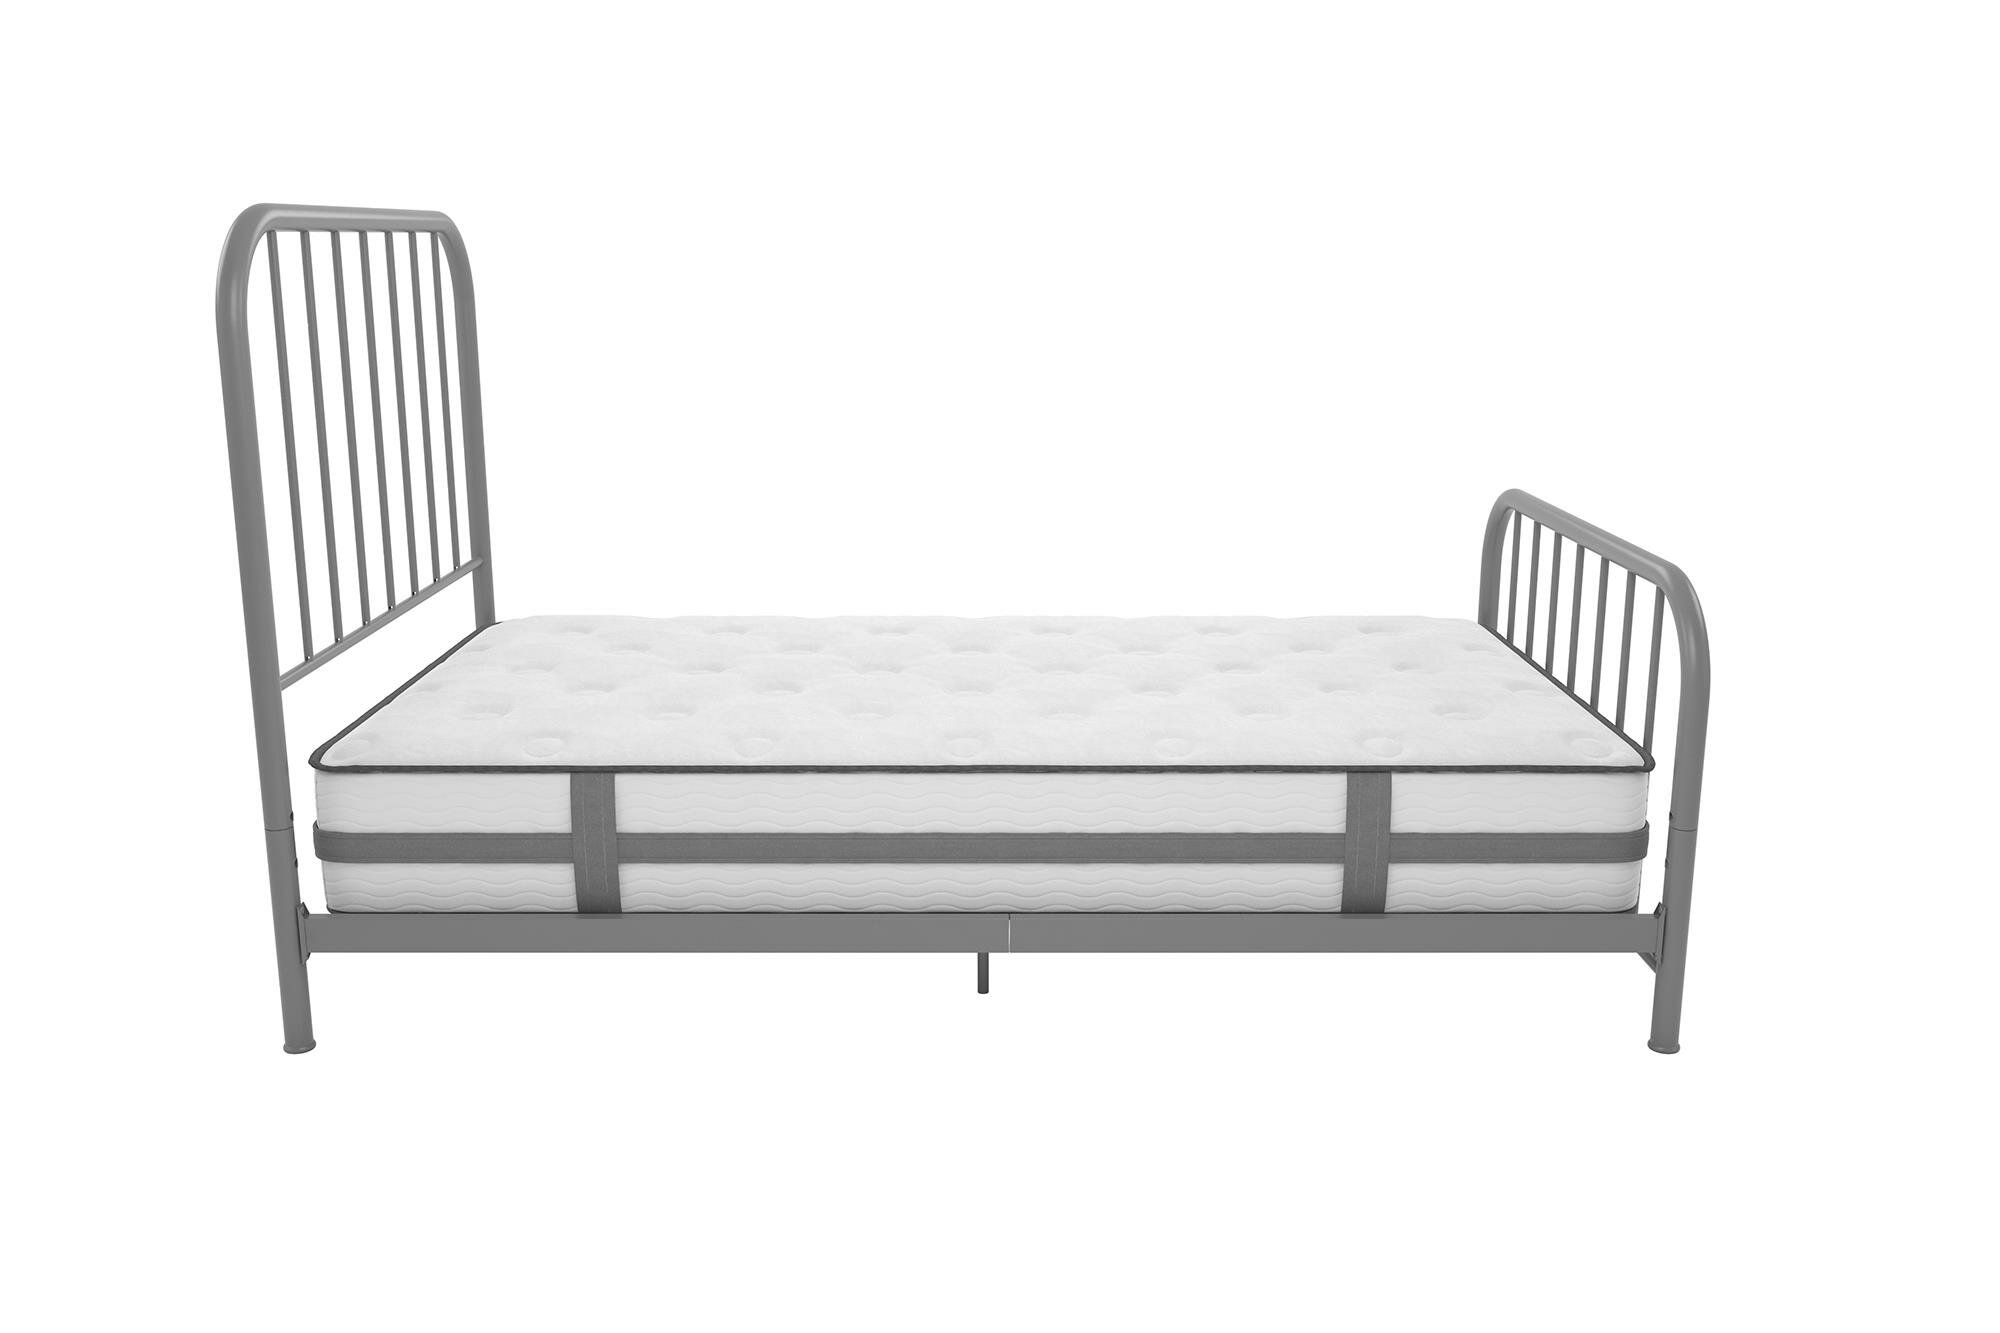 iron antique frame full target platform size with frames headboard king queen of metal rustic vintage wrought review bed low ikea leirvik